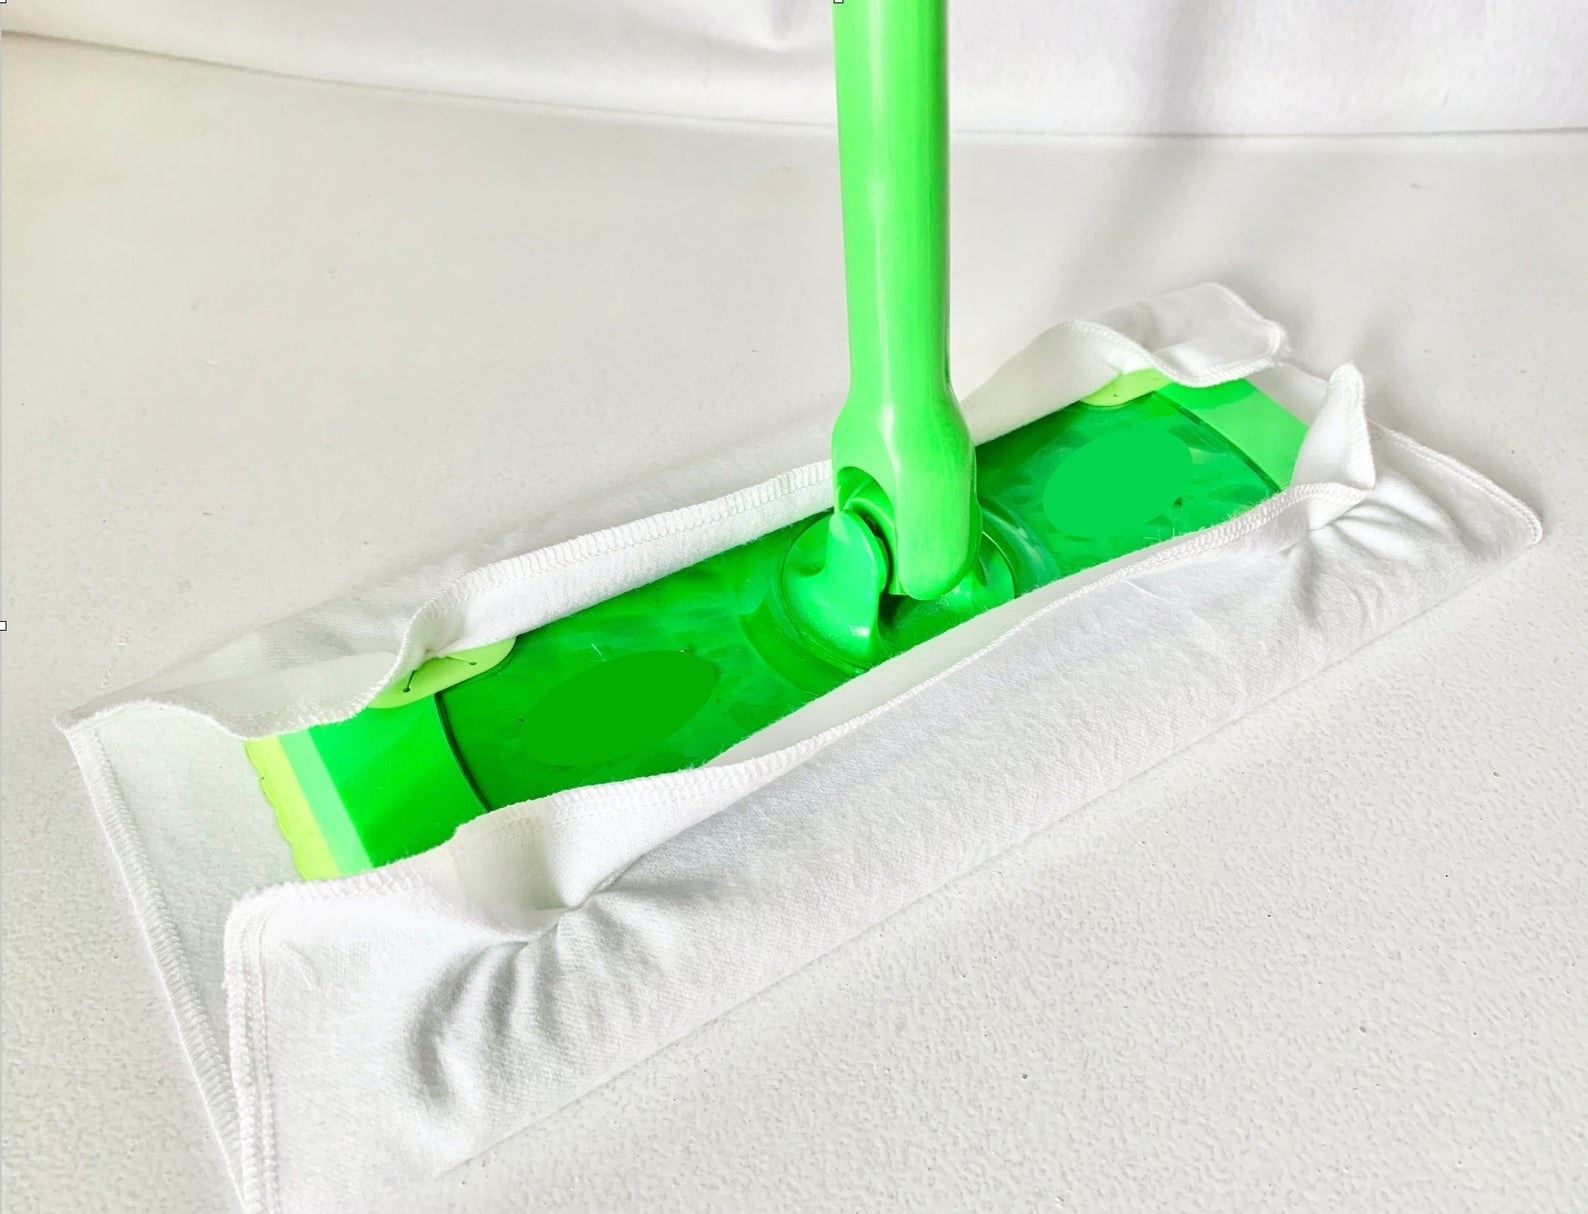 White cotton cover wrapped around a green Swiffer